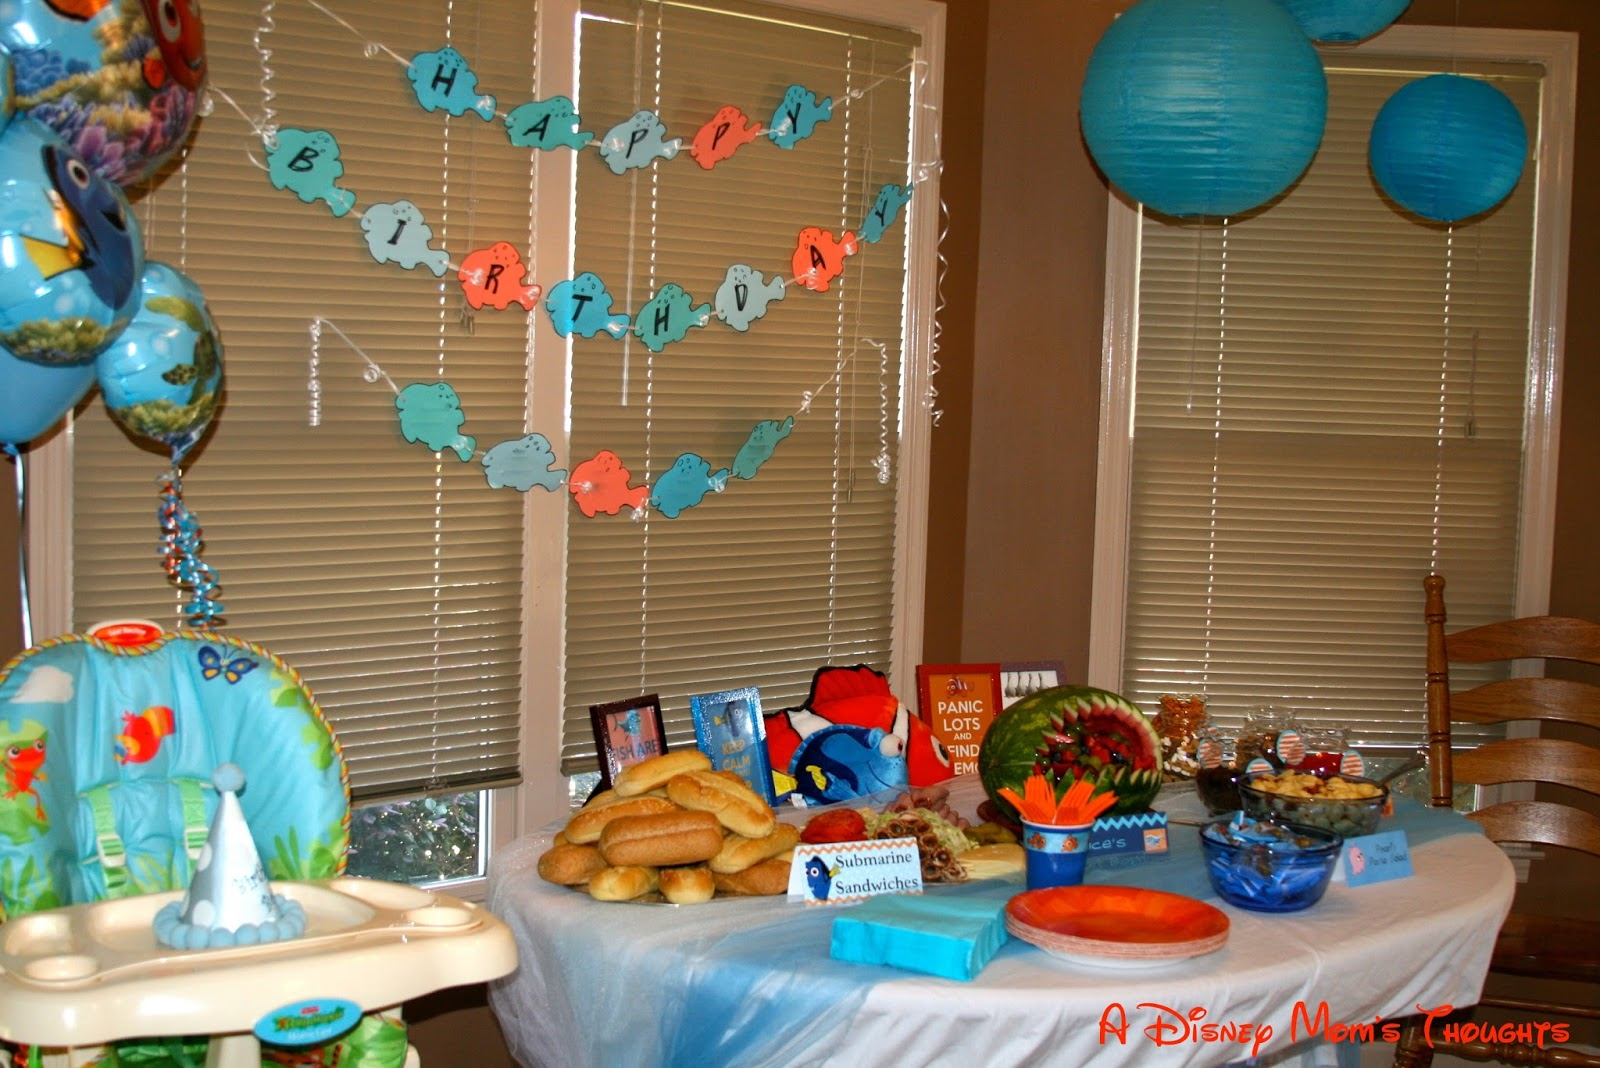 Finding nemo first birthday decorations a disney mom 39 s for 1st birthday decoration images